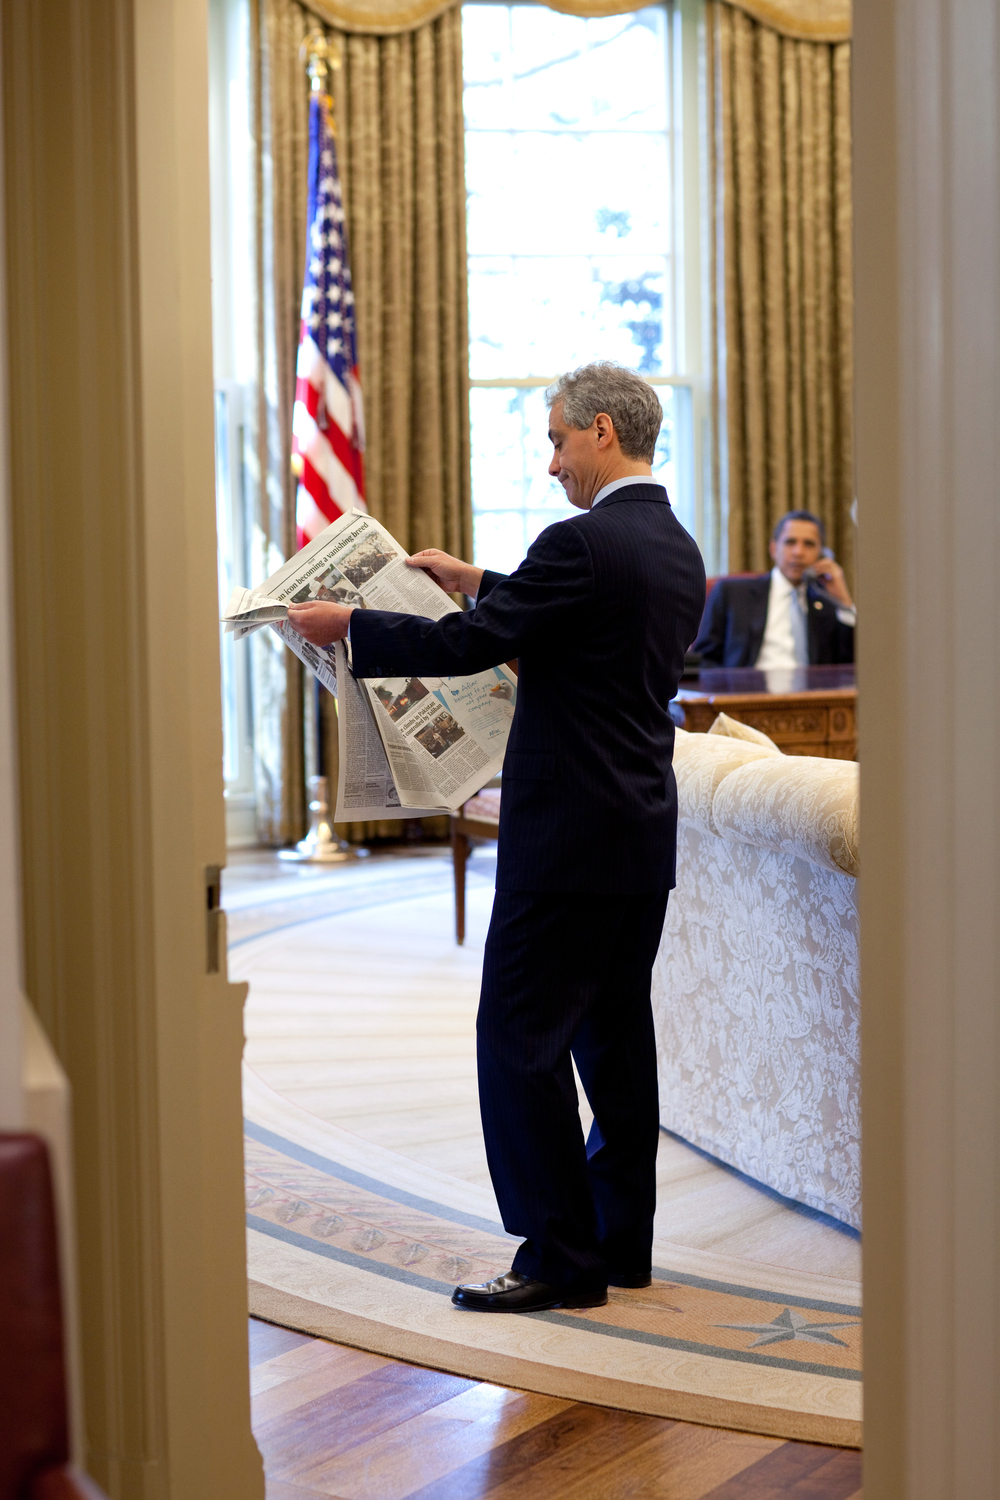 Rahm Emanuel with U.S. President Barack Obama in the Oval Office when Emanuel served as Obama's of staff in 2009. Credit: Official White House photo by Pete Souza.